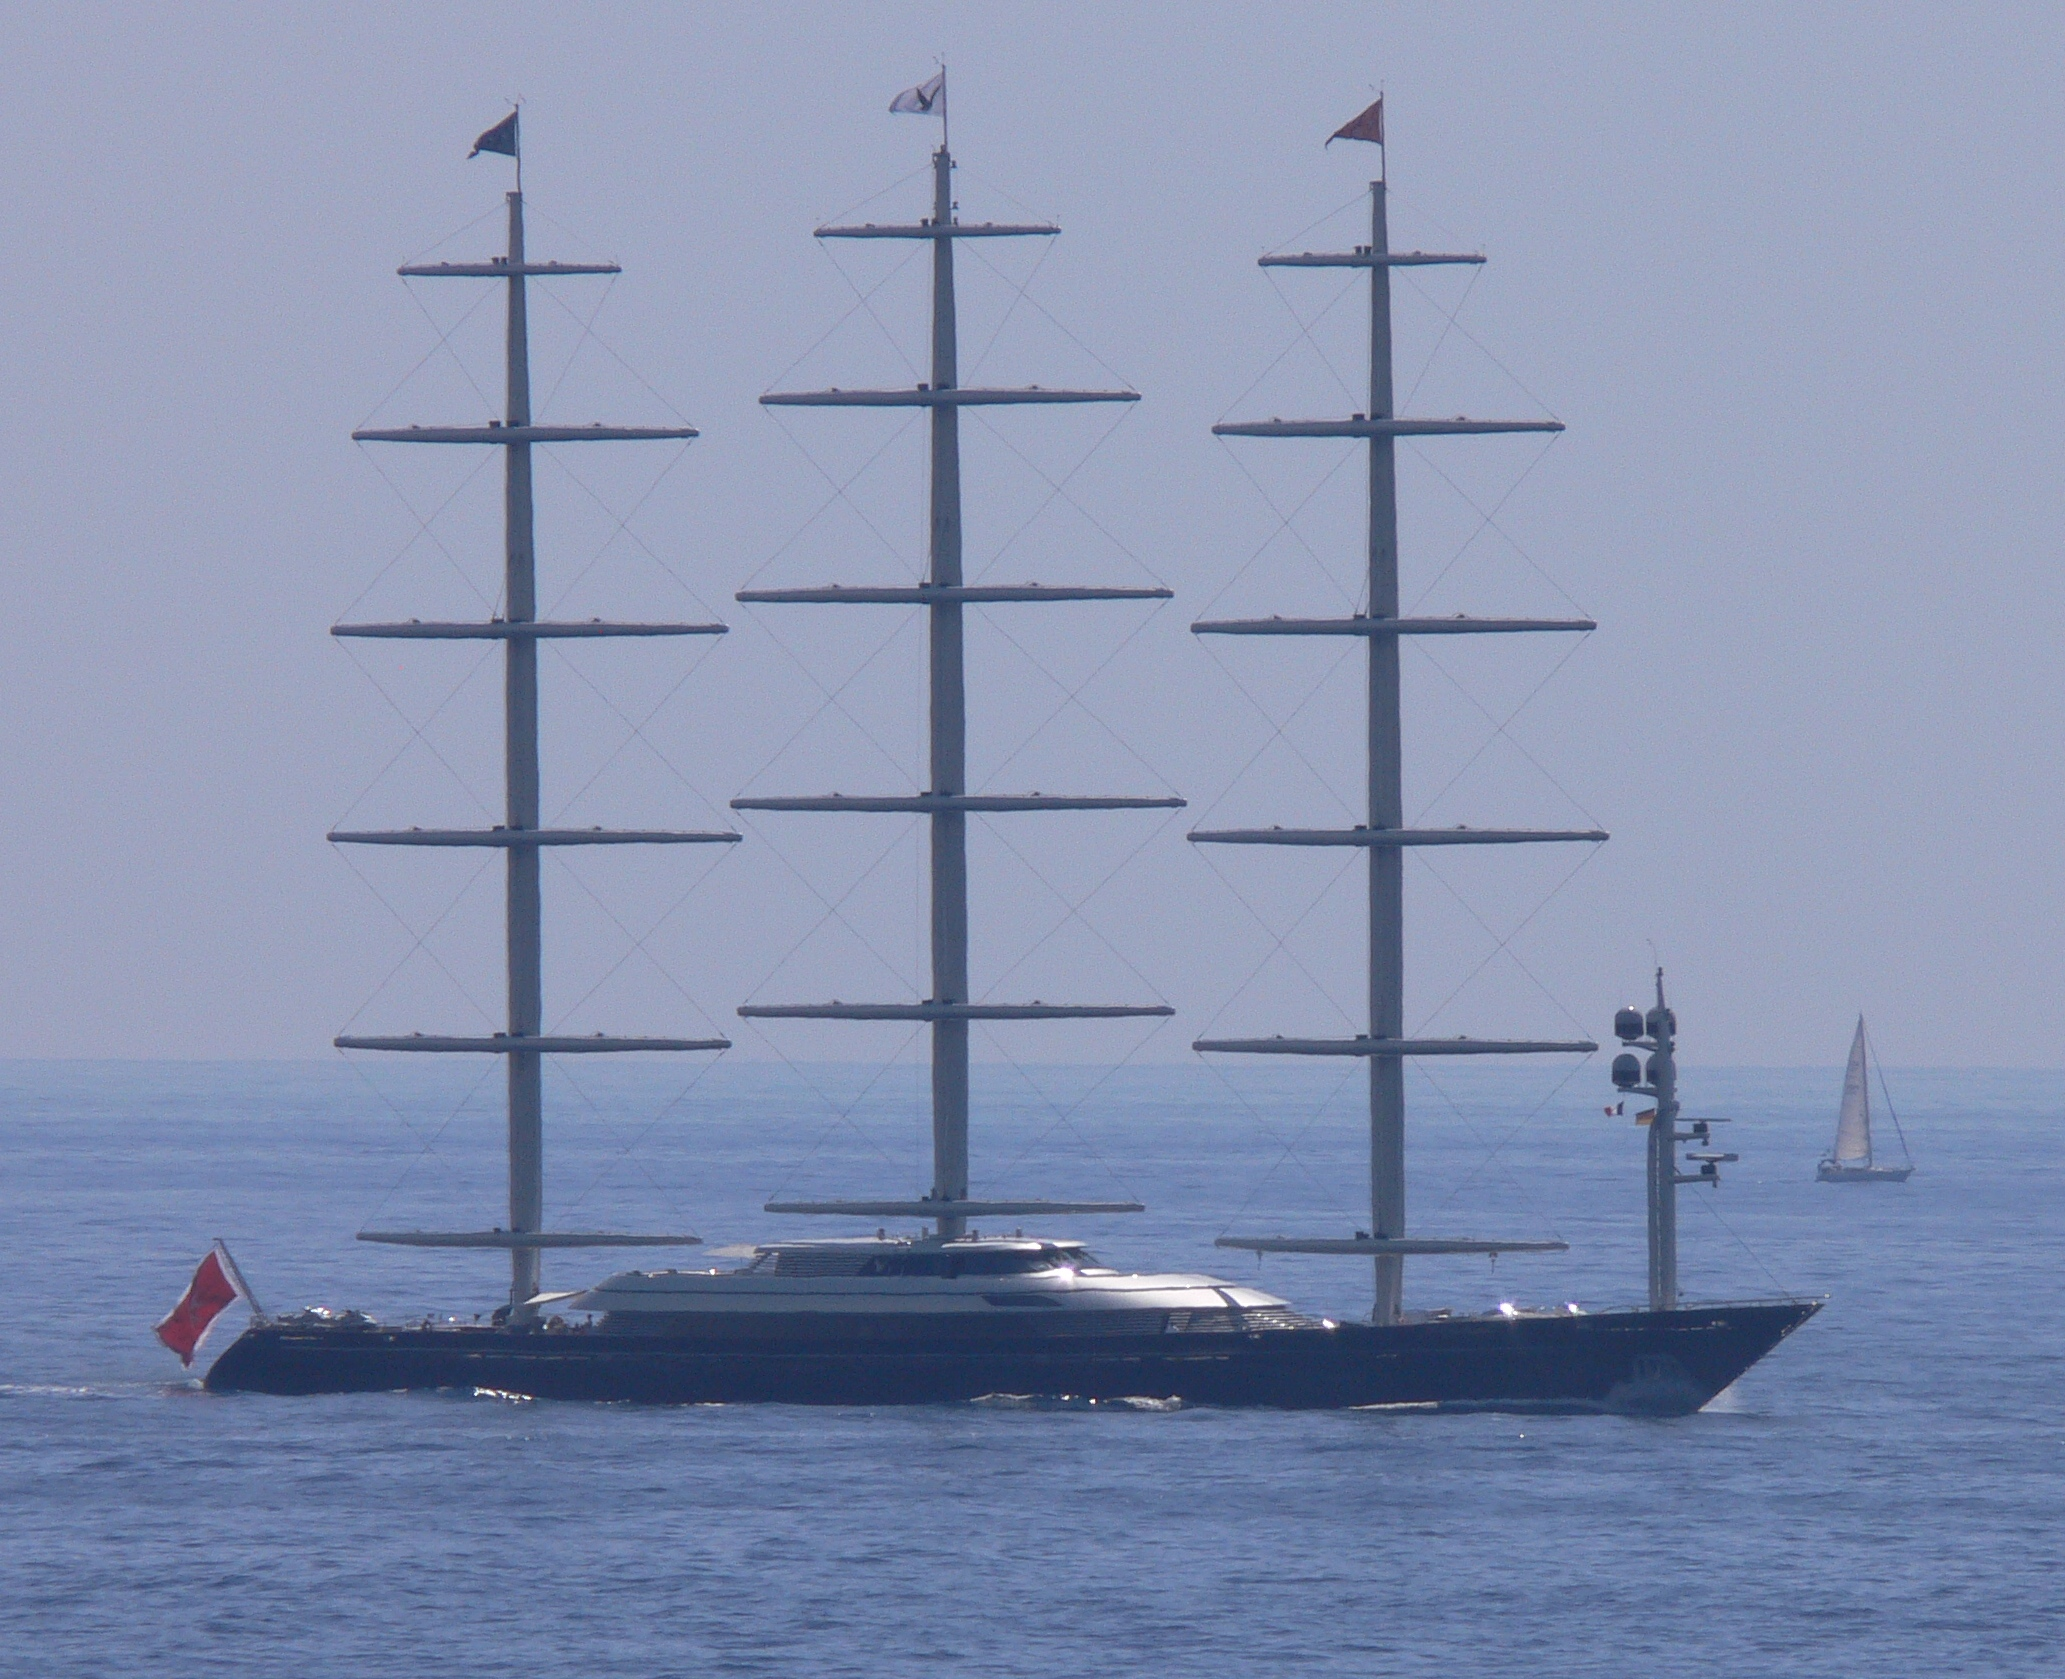 Maltese Falcon Superyachts News Luxury Yachts Charter Yachts